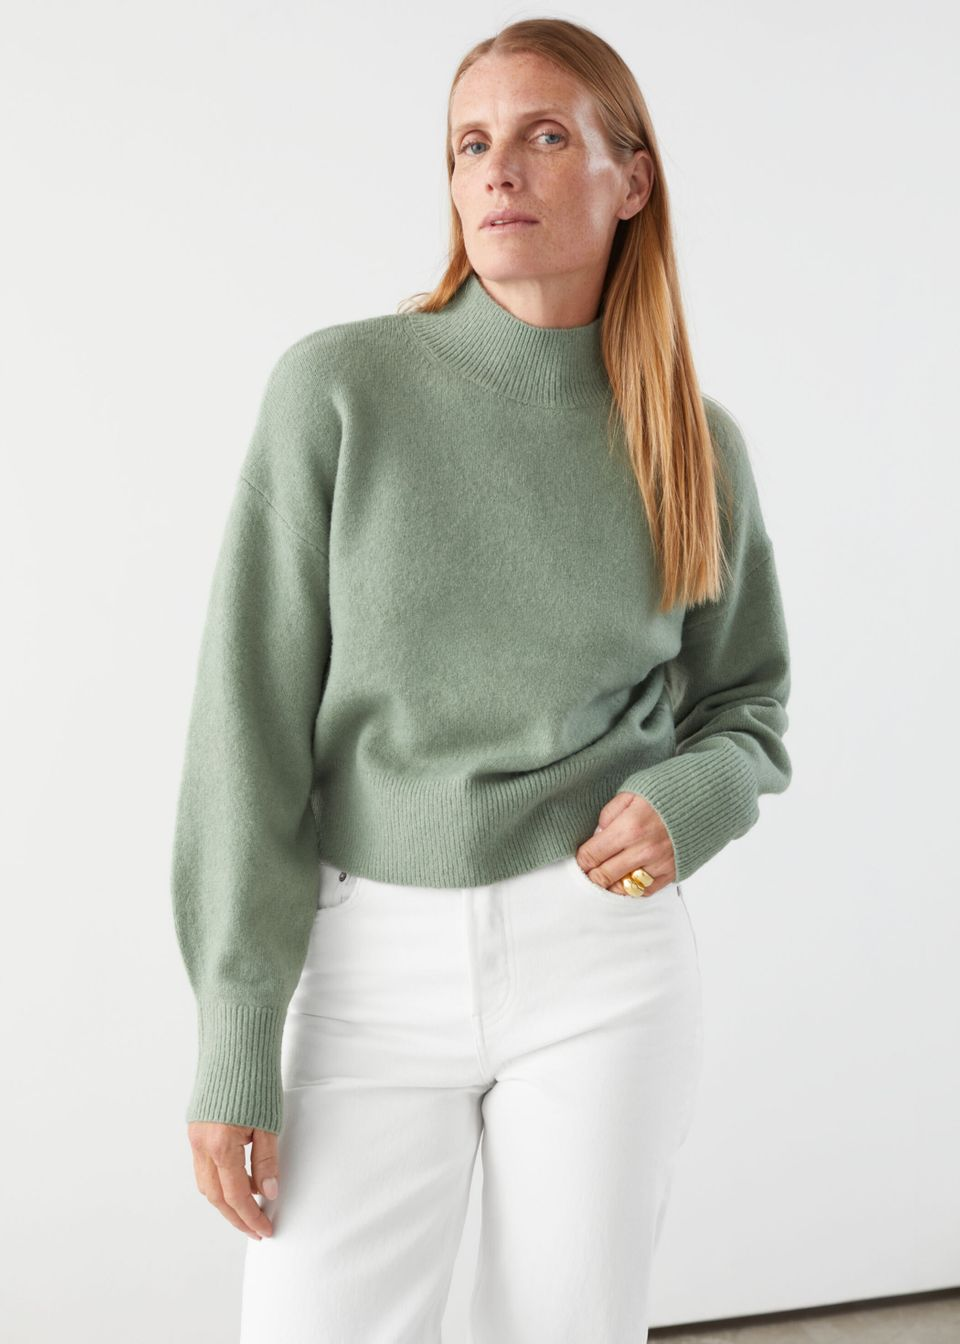 25 Cozy Sweaters Under $60 Perfect For This Fall 6